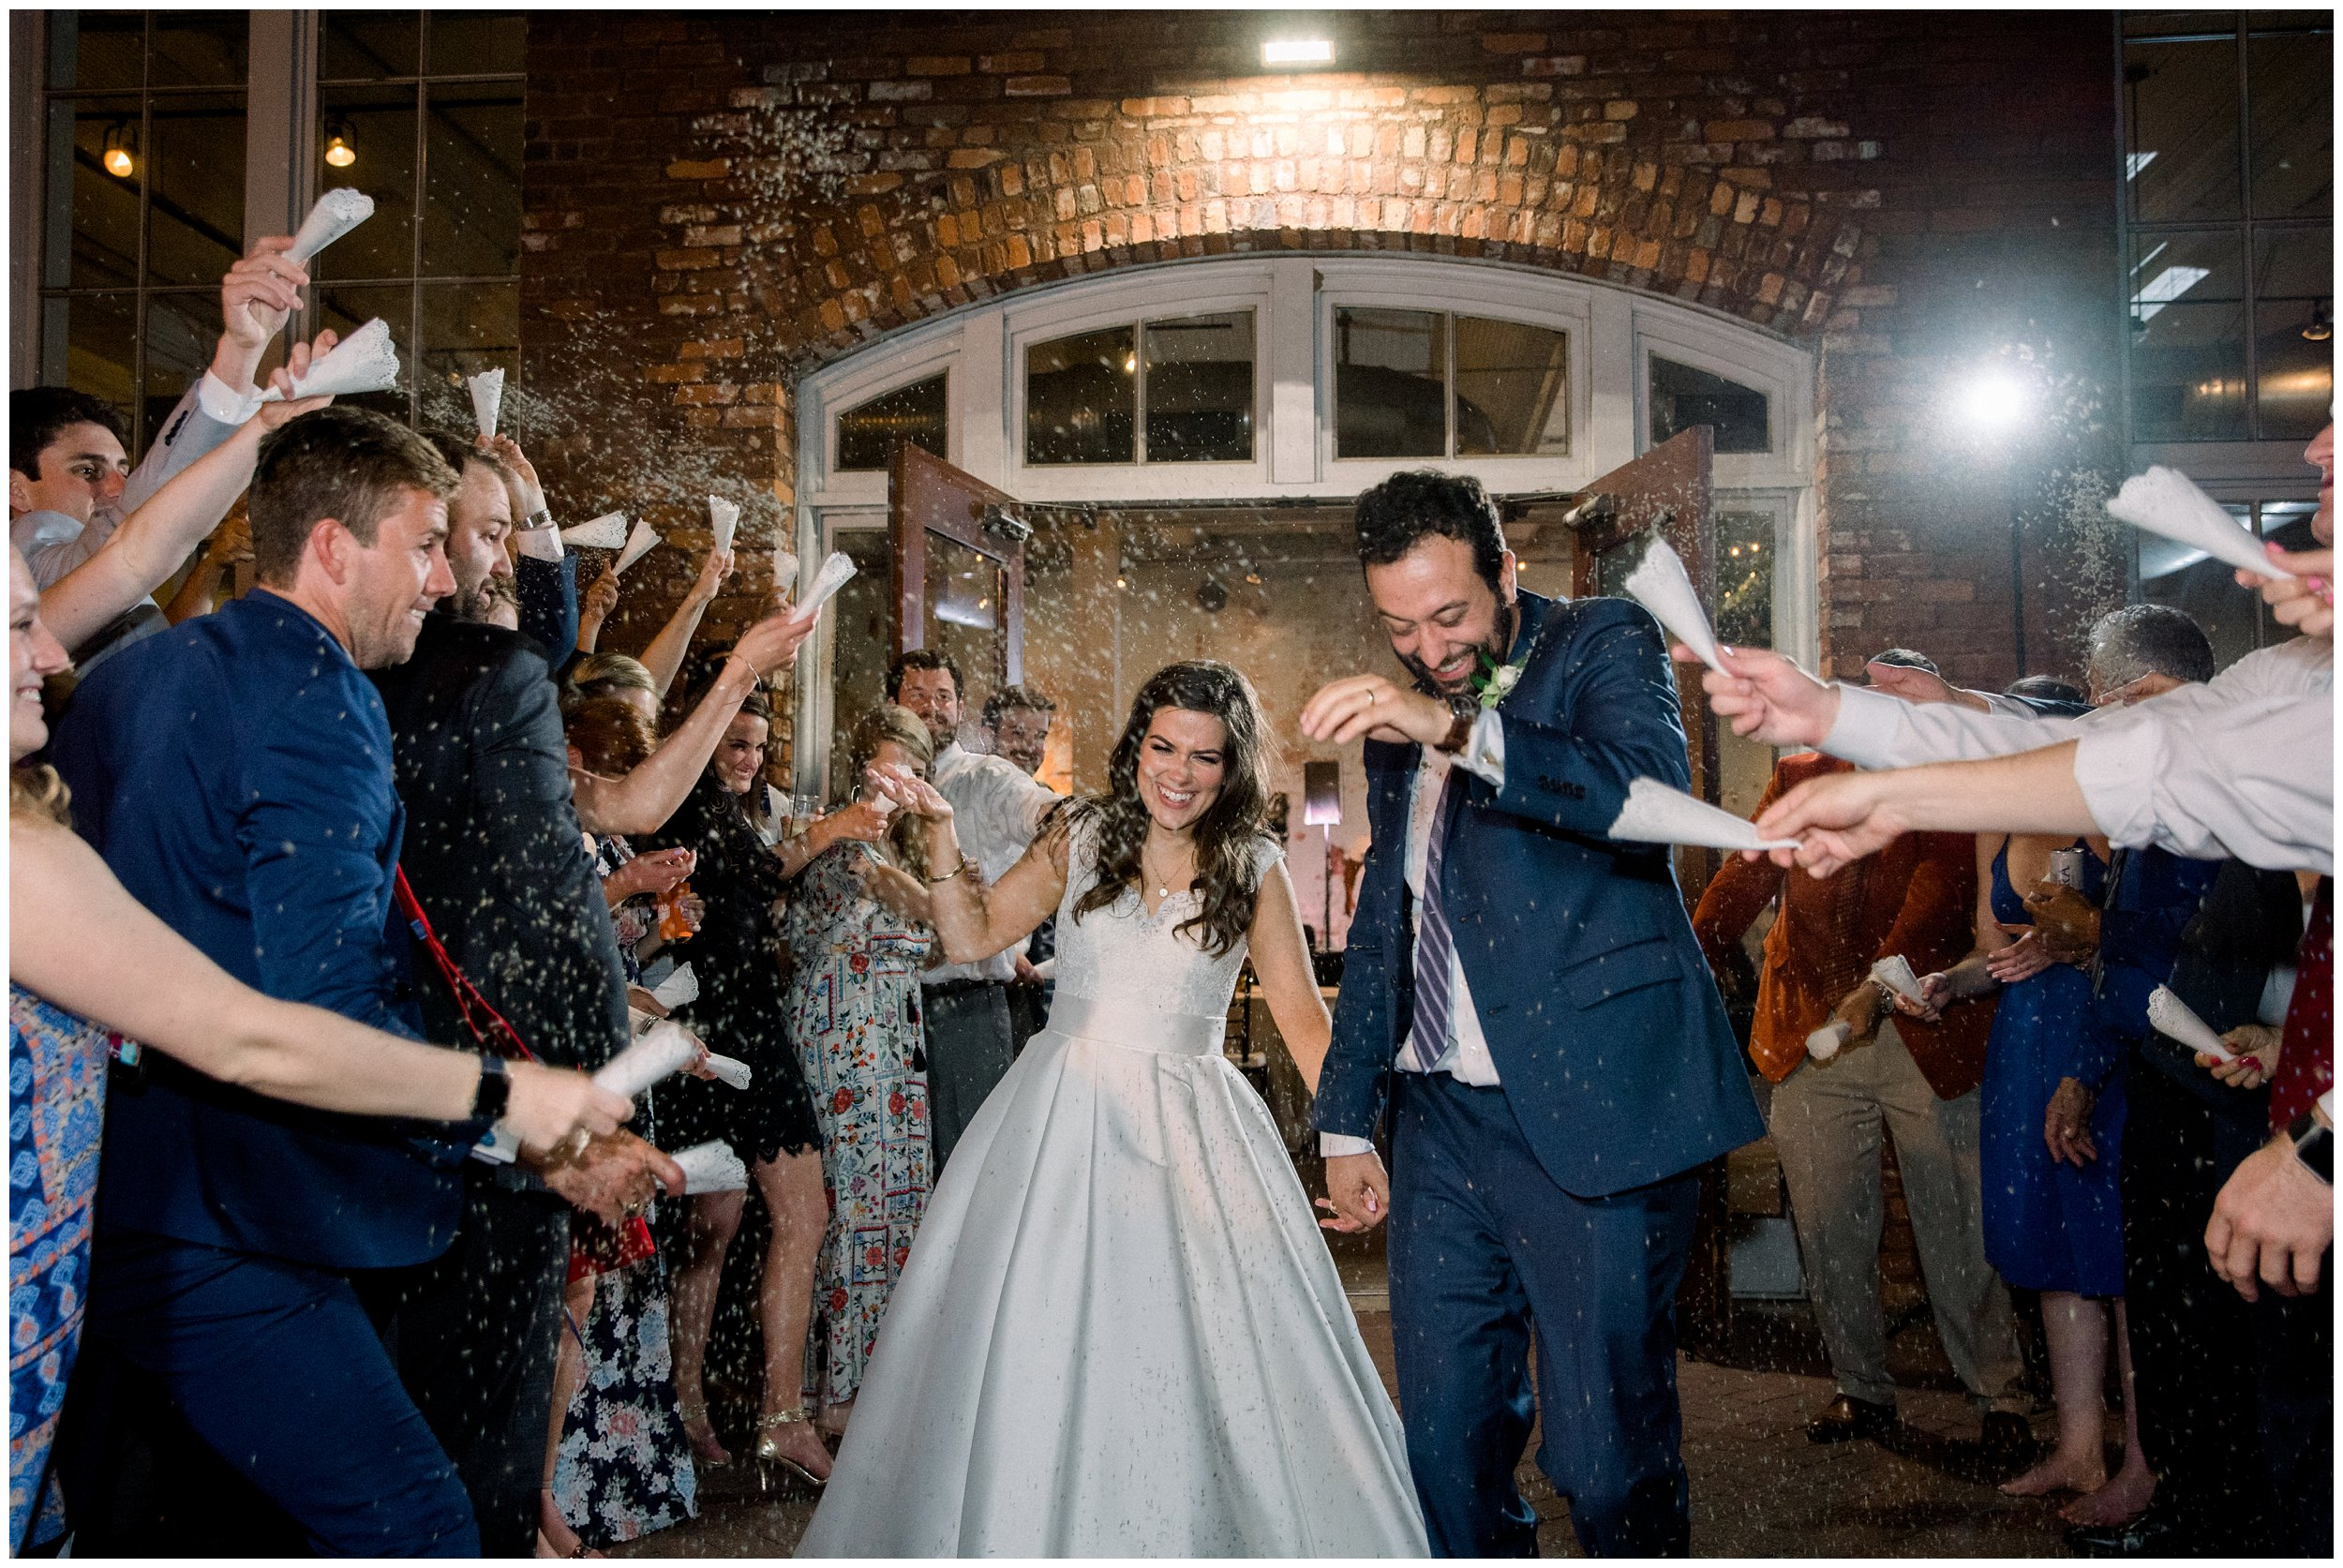 guests throwing lavender as bride and groom exit columbia wedding venue